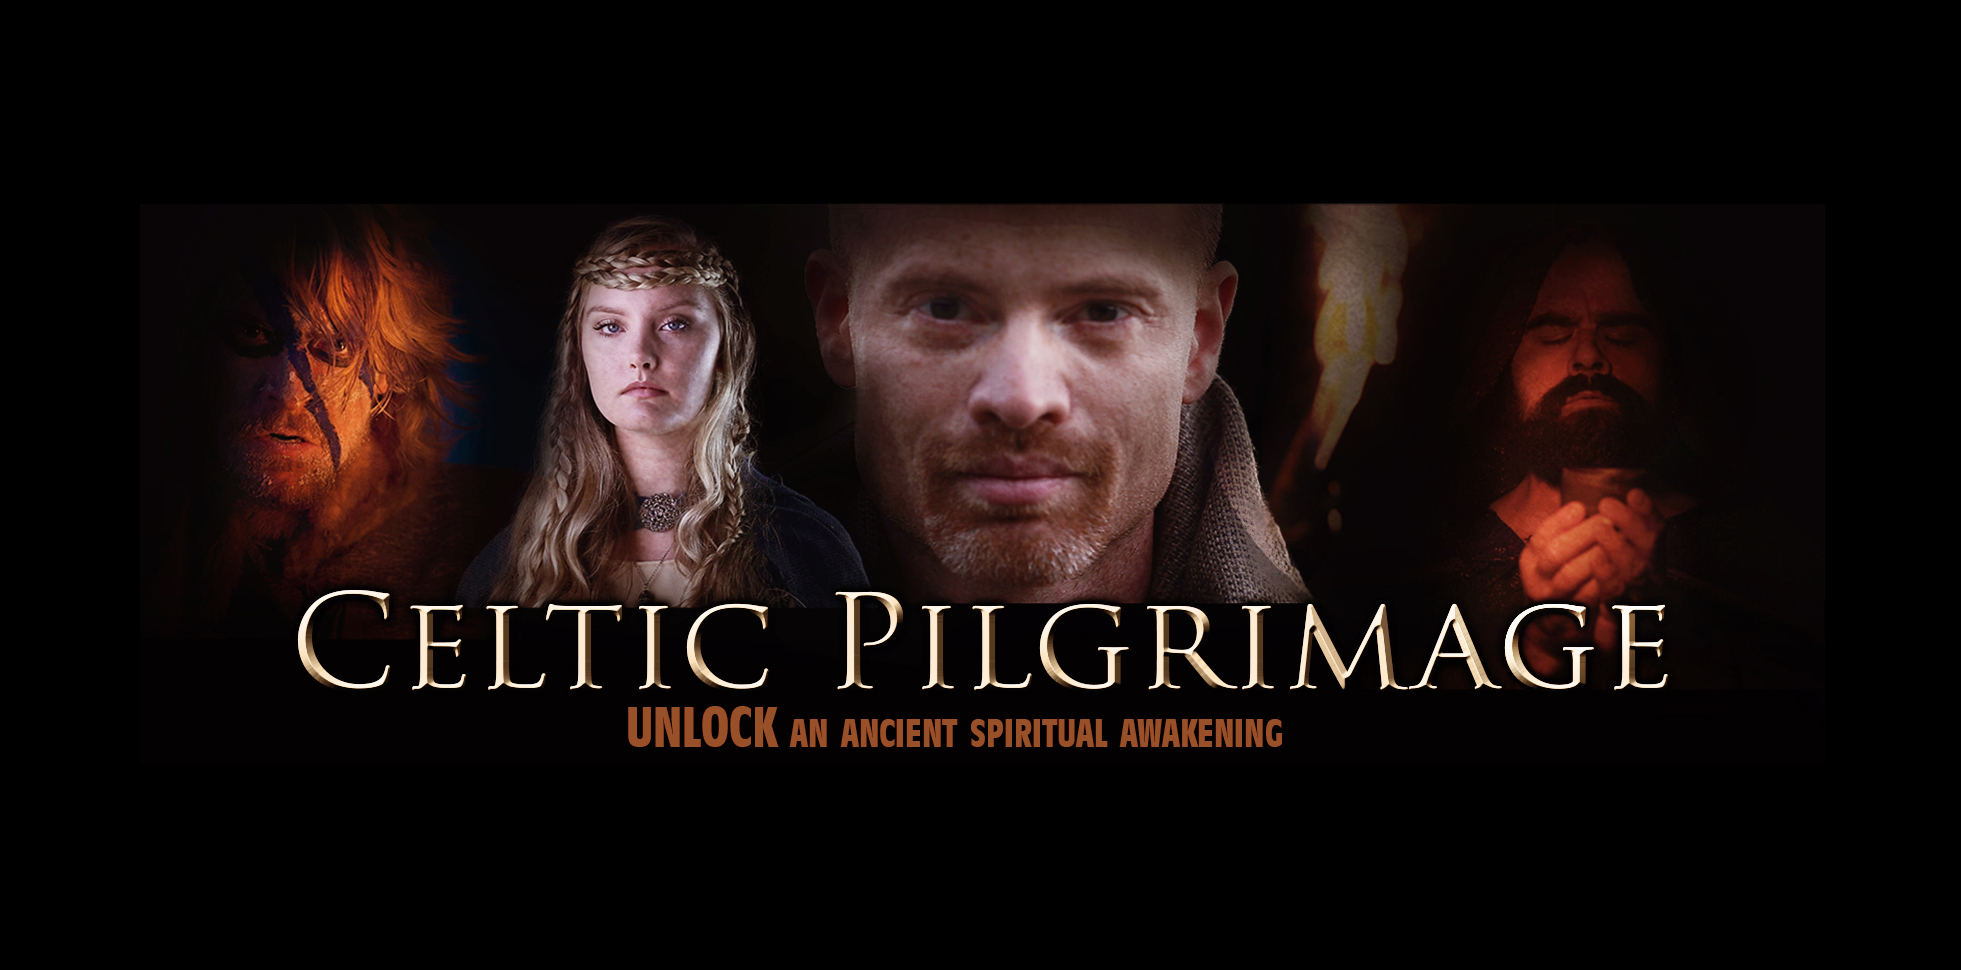 Celtic Pilgrimage Unlock an Ancient Spiritual Awakening